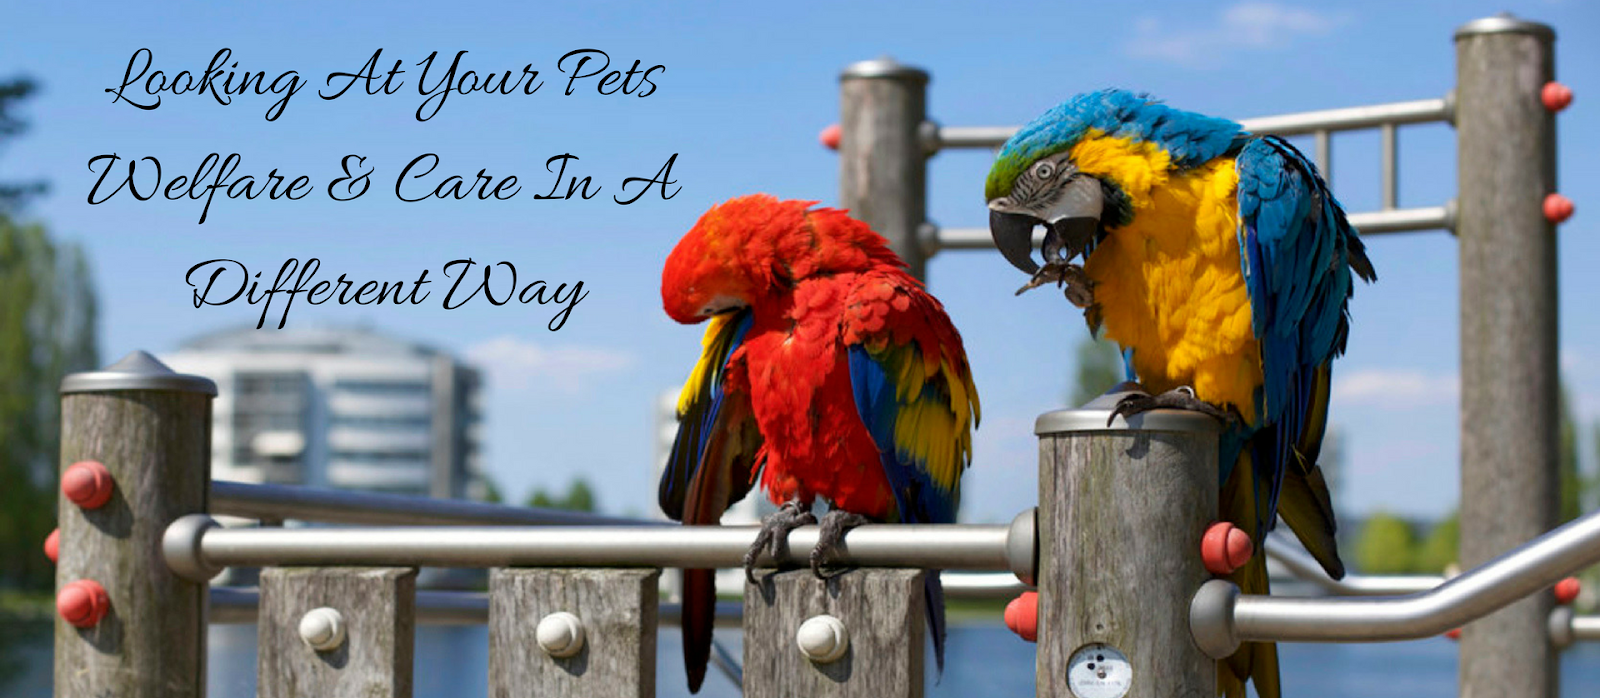 The Welfare And Care Of Your Pet The Parrot life Way